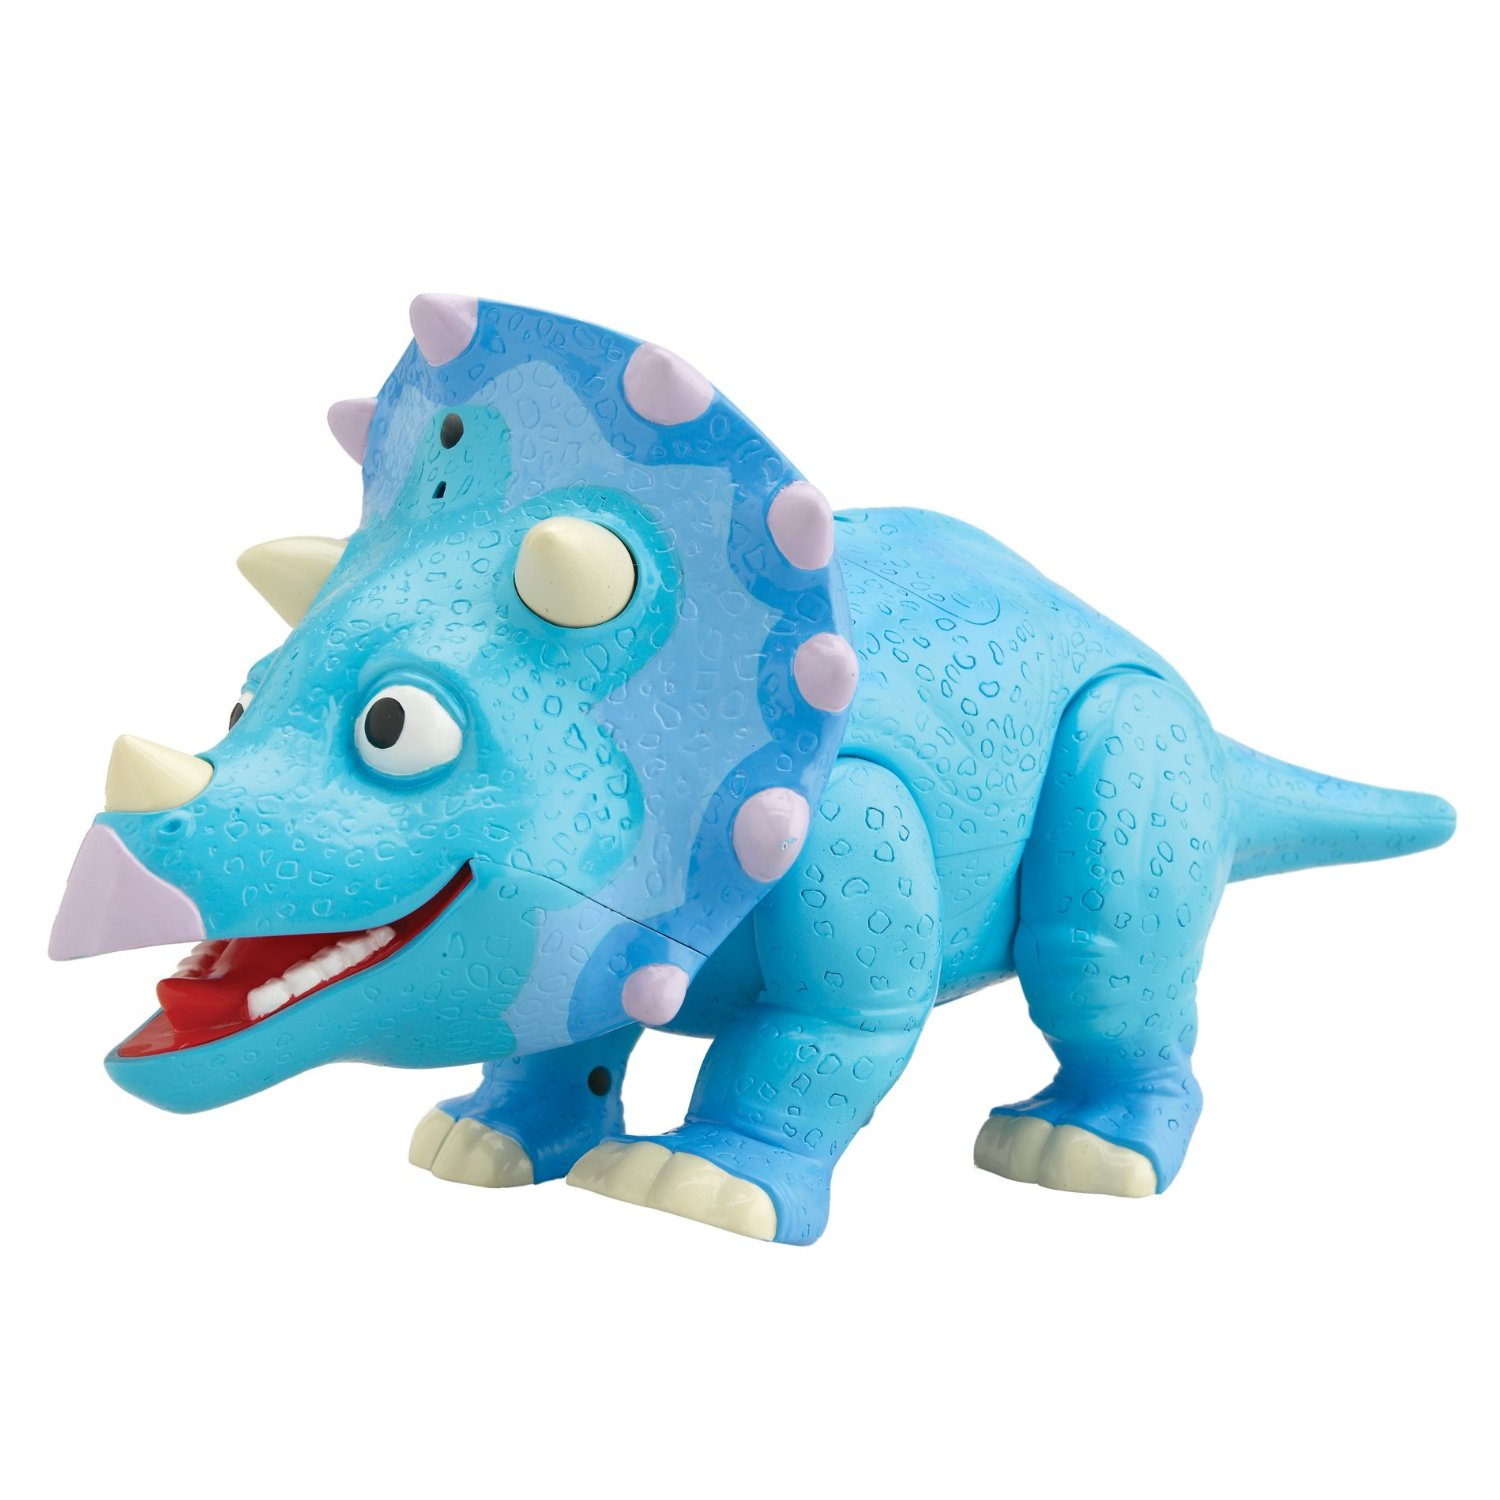 Popular Dinosaur Toys : Top fun and coolest best dinosaur toys for boys